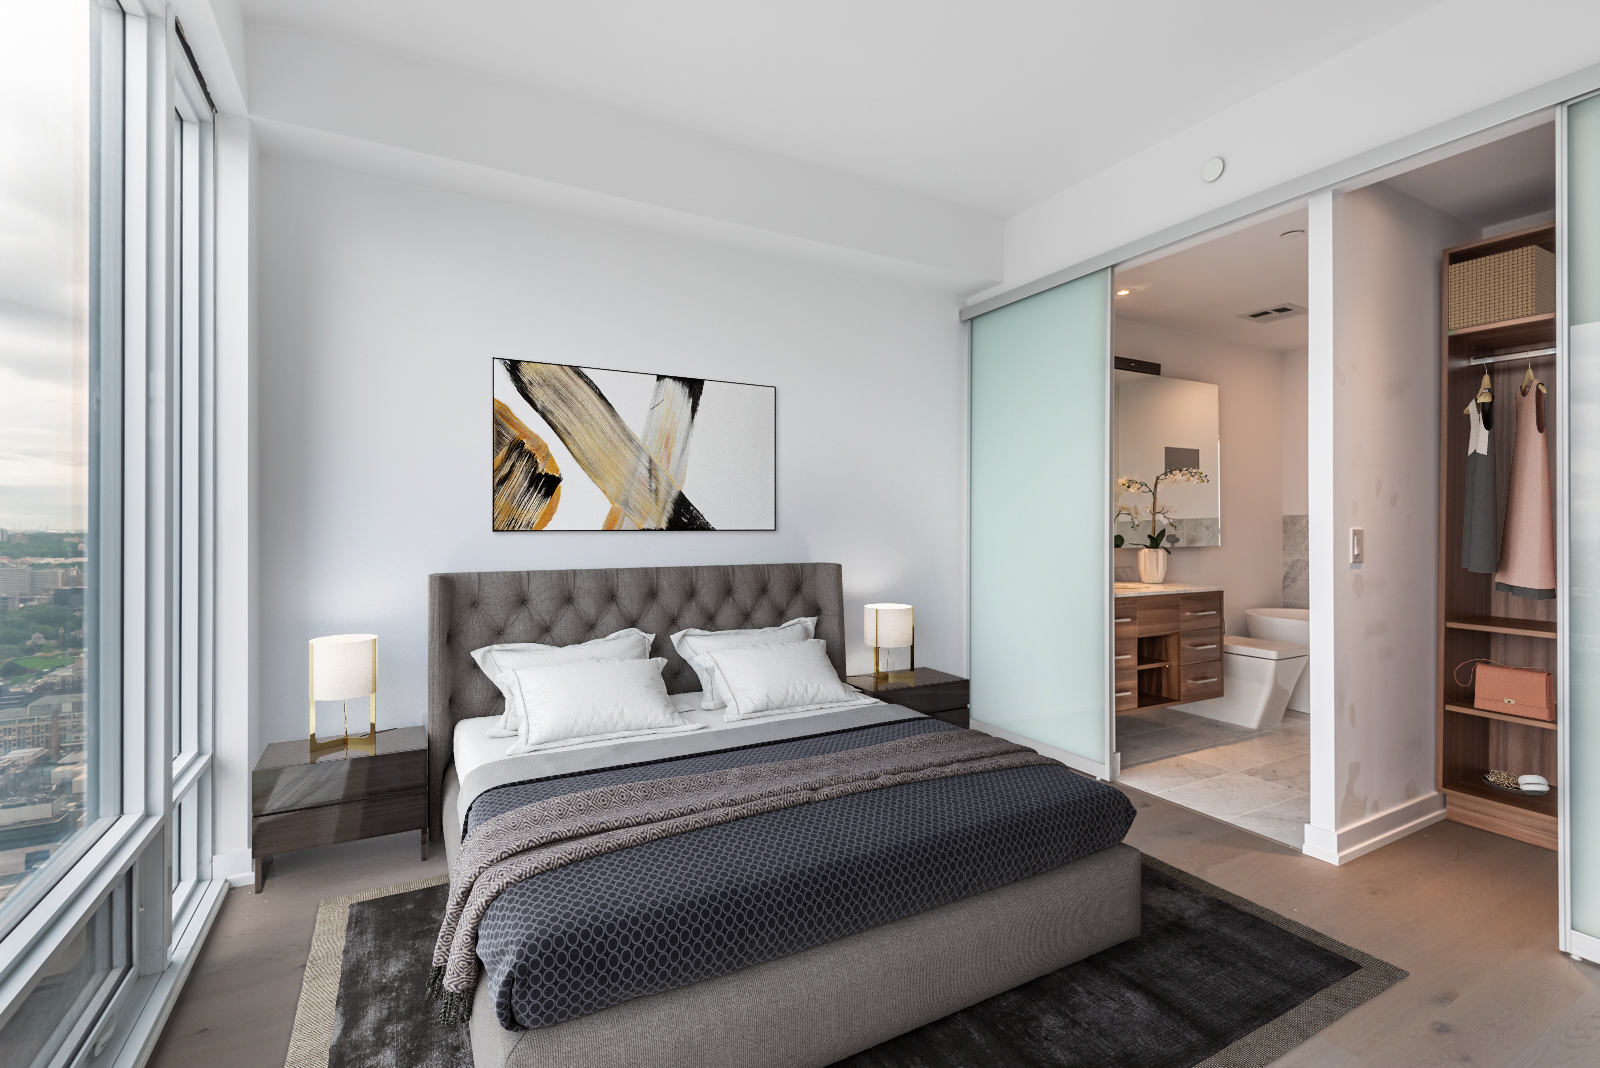 488 University Ave Unit 3410 master bedroom with 3D-rendered bed, paintings and closet.